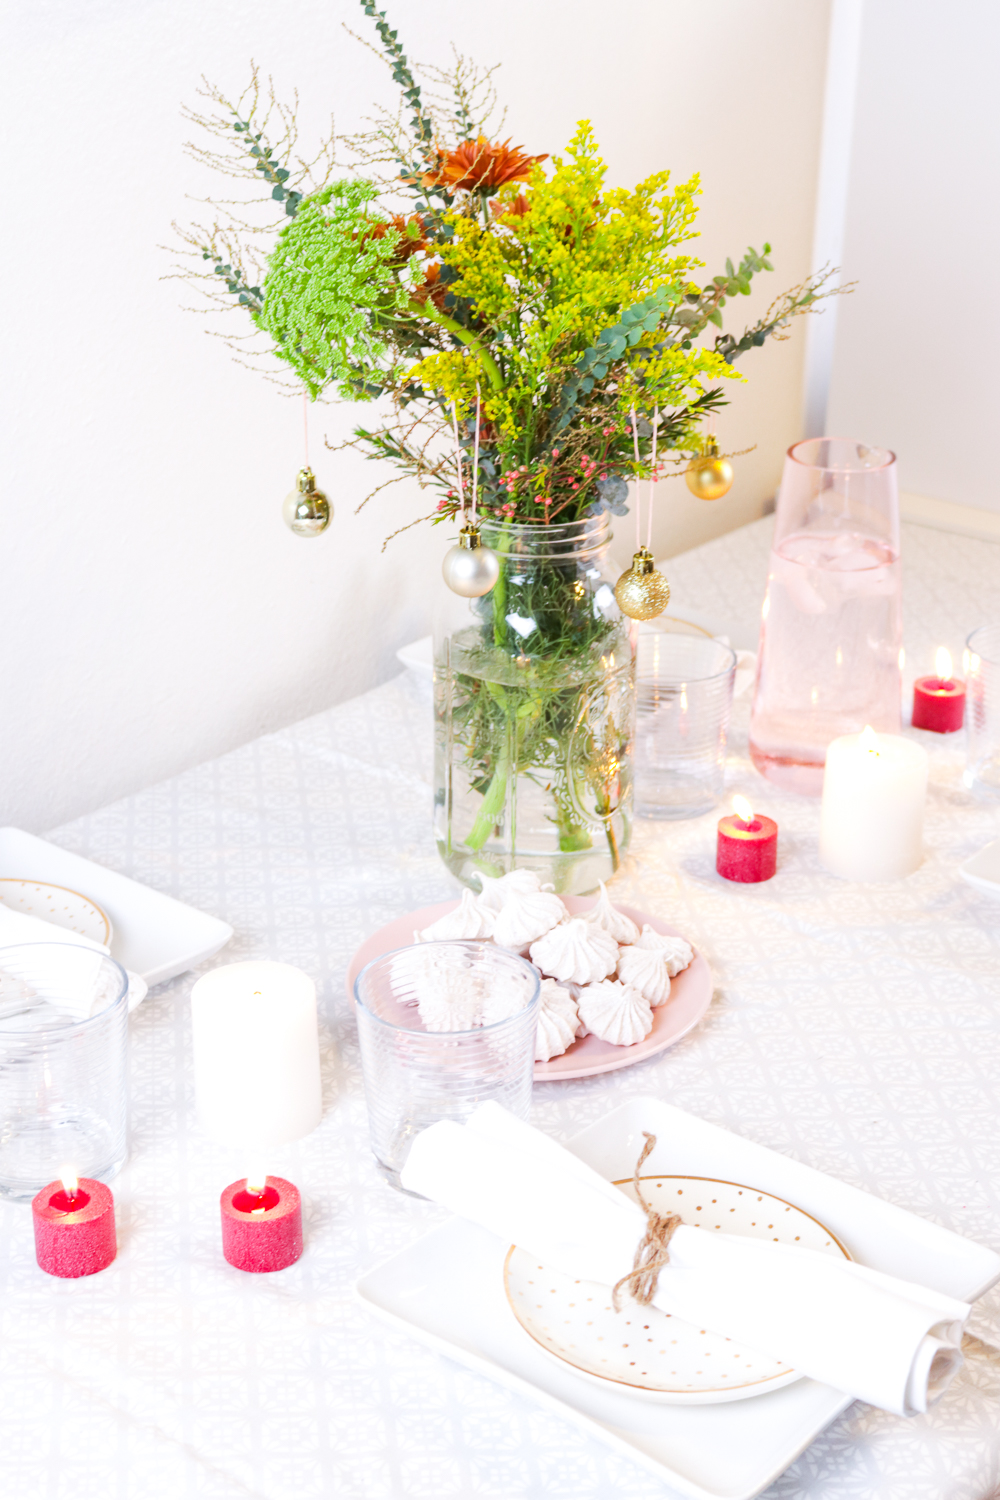 table-setting-one-o-diy-oneo-christmas-setting-holiday-decor-blog-hop-12